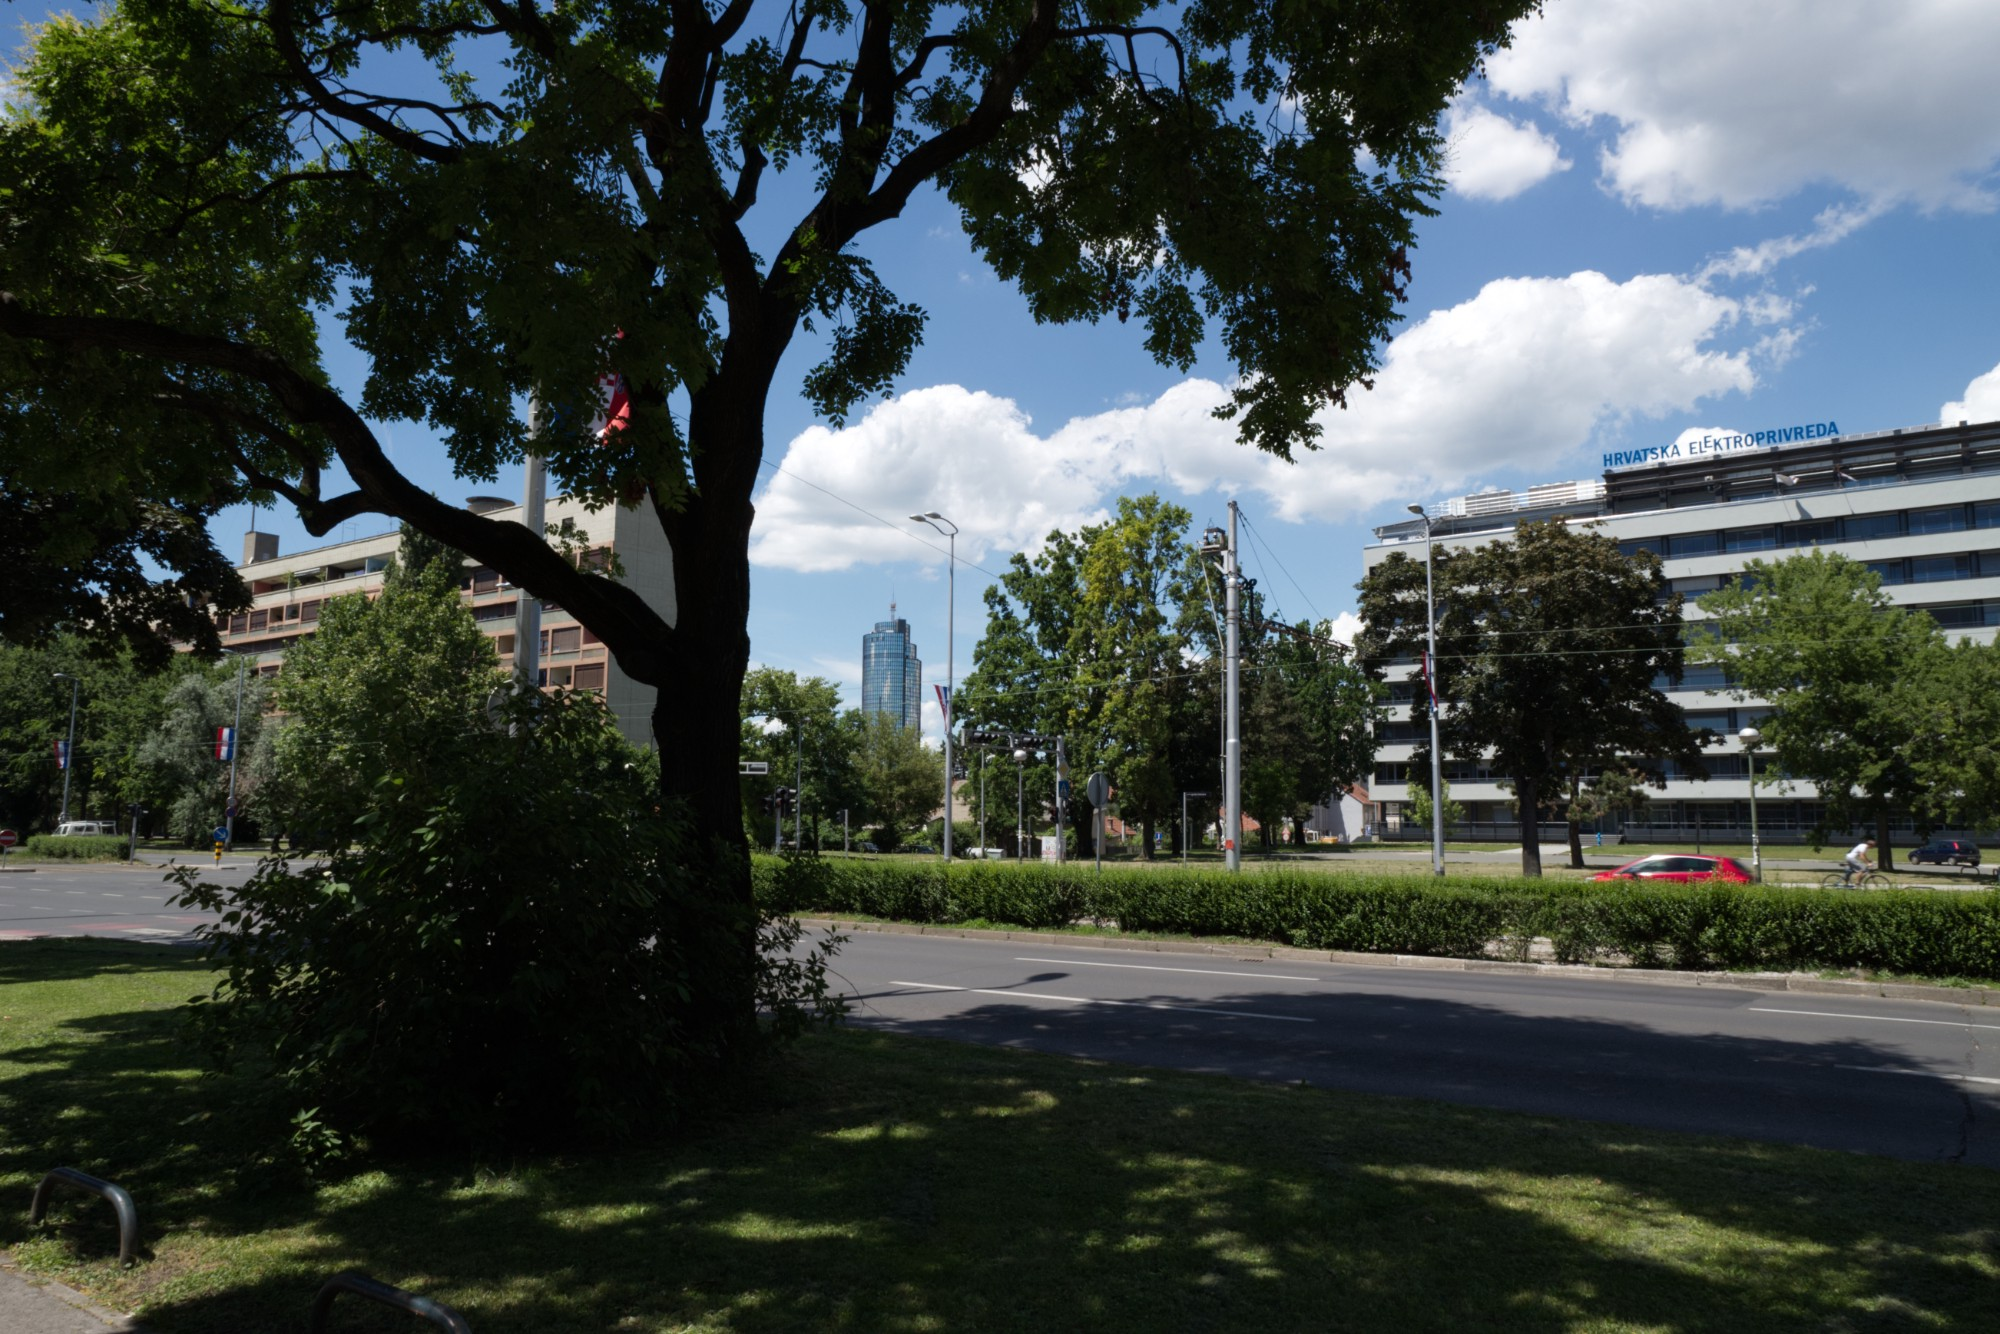 a backlit tree shadowed in the foreground, the city in the background. 60s architecture, greenery. central, in the distance, a famous class circular highrise, the cibona tower.